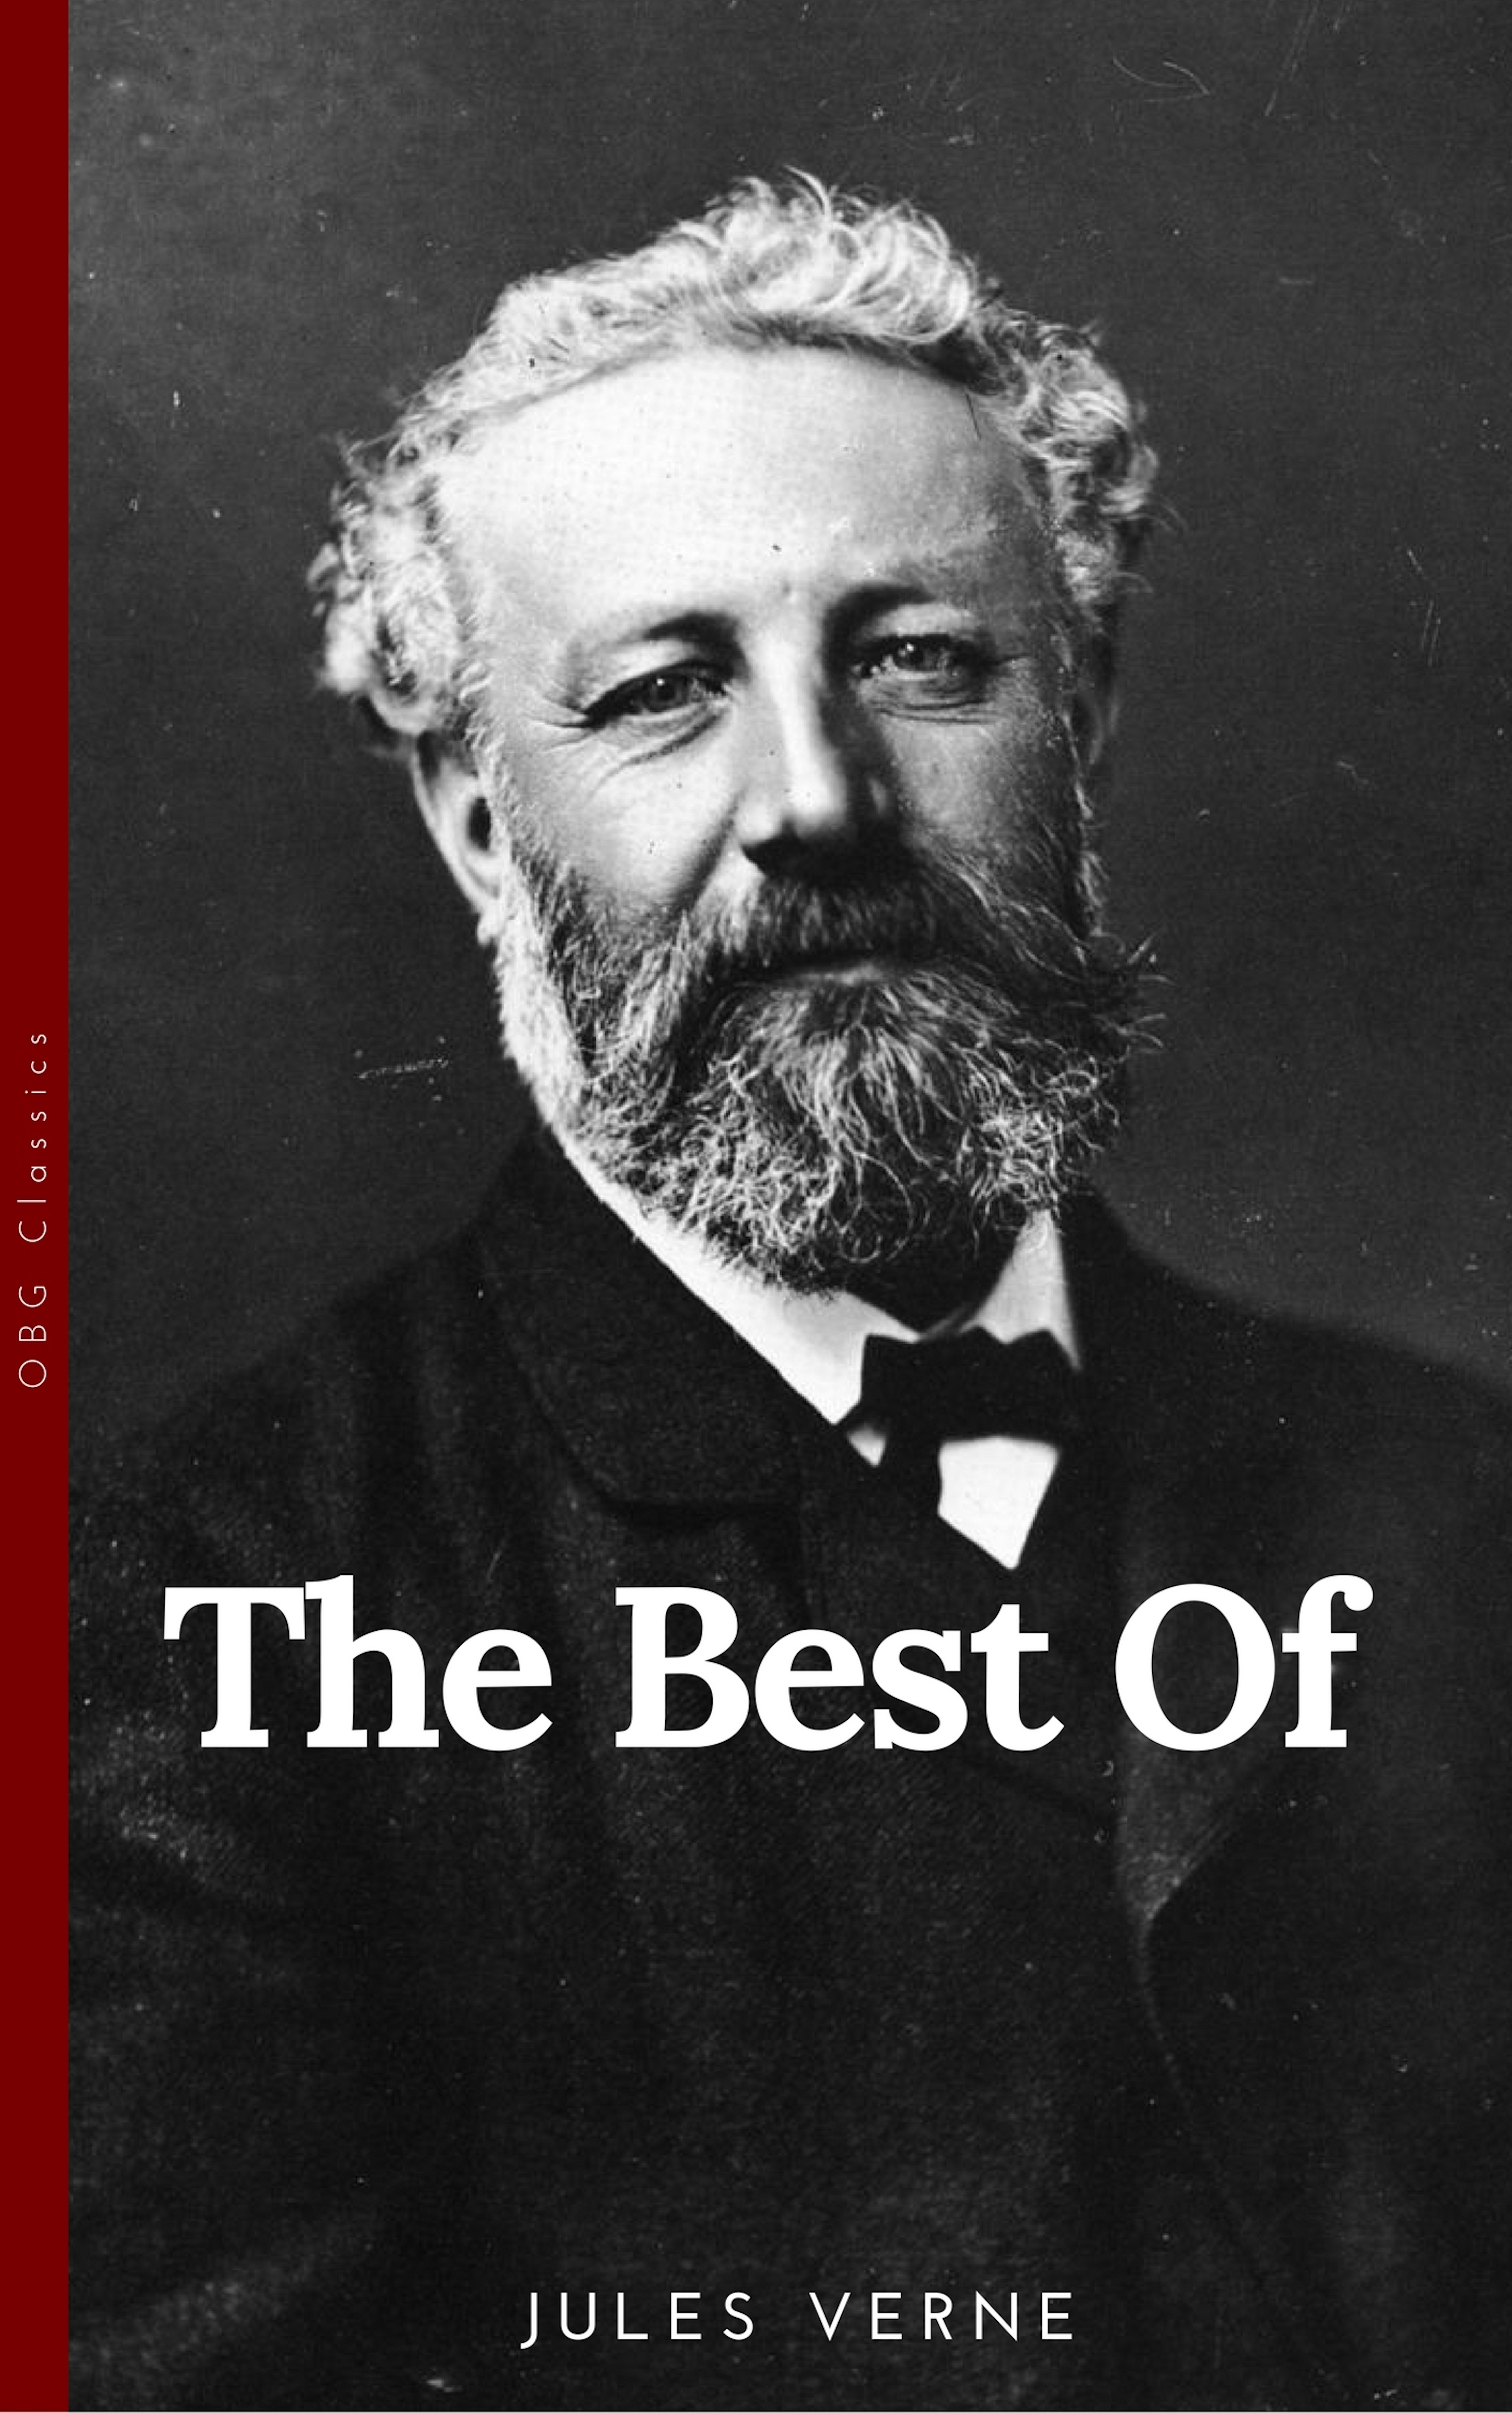 the best of jules verne the father of science fiction twenty thousand leagues under the sea around the world in eighty days journey to the center of t